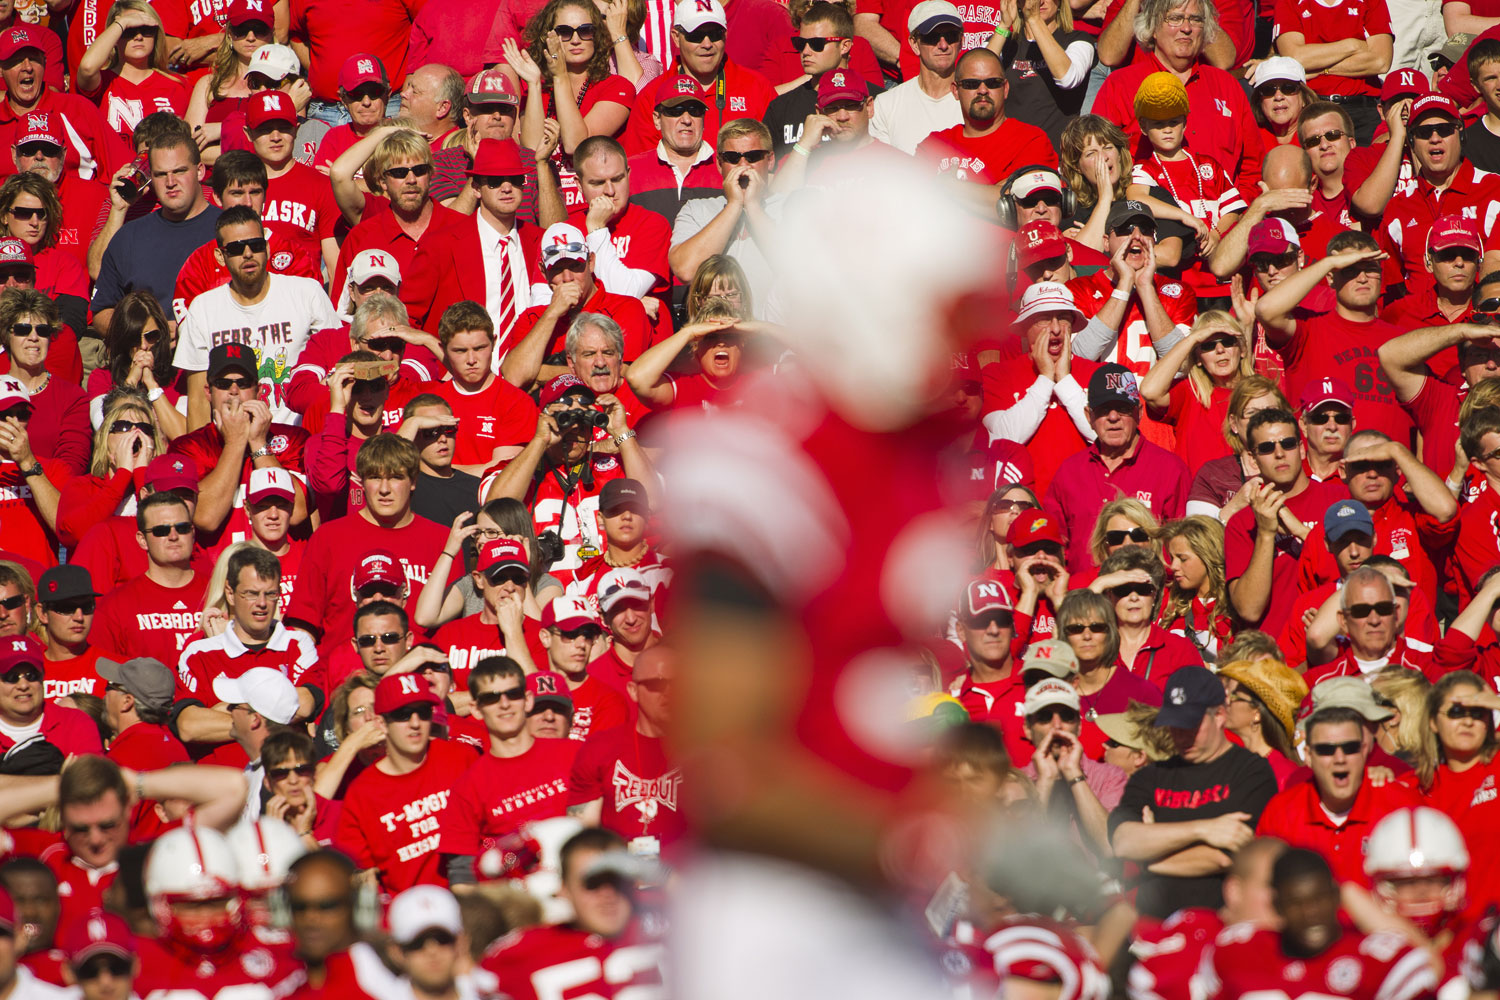 """The famous """"Sea of Red"""" made up of Husker fans, blankets Memorial Stadium during an October 2010 match in Lincoln, Nebraska."""